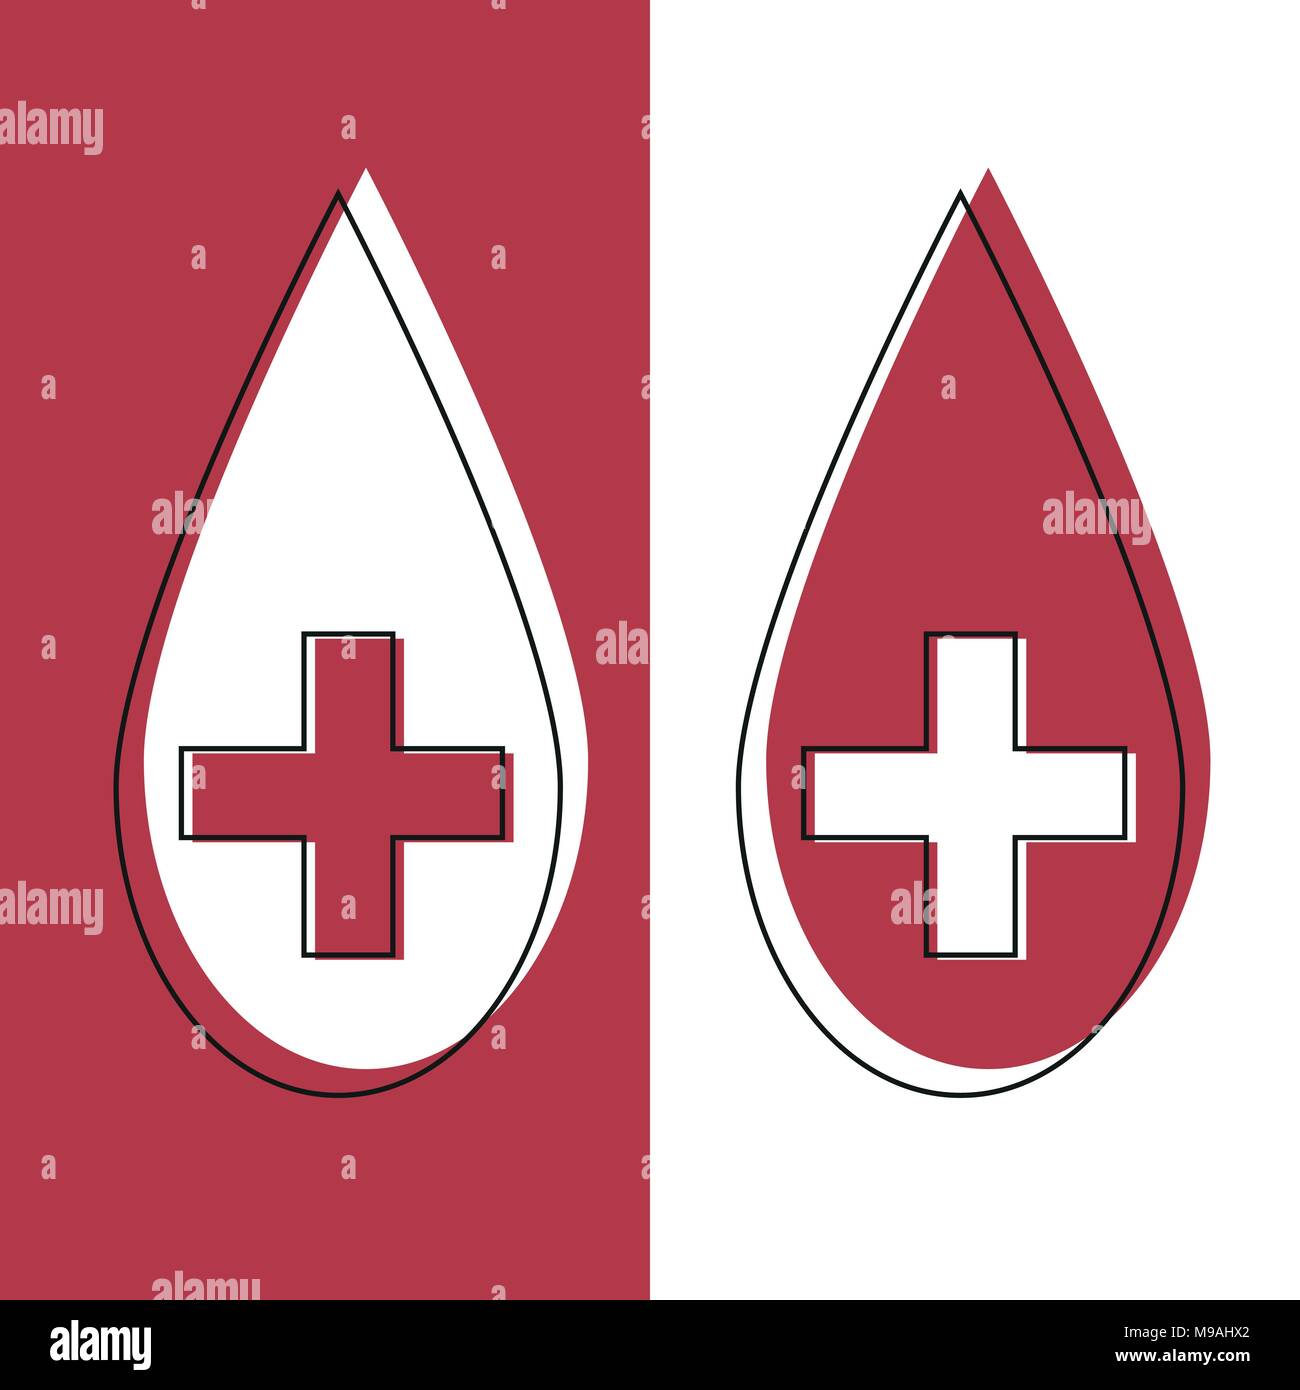 Red blood drop icon in line desidn. Red blood drop vector illustration. - Stock Image